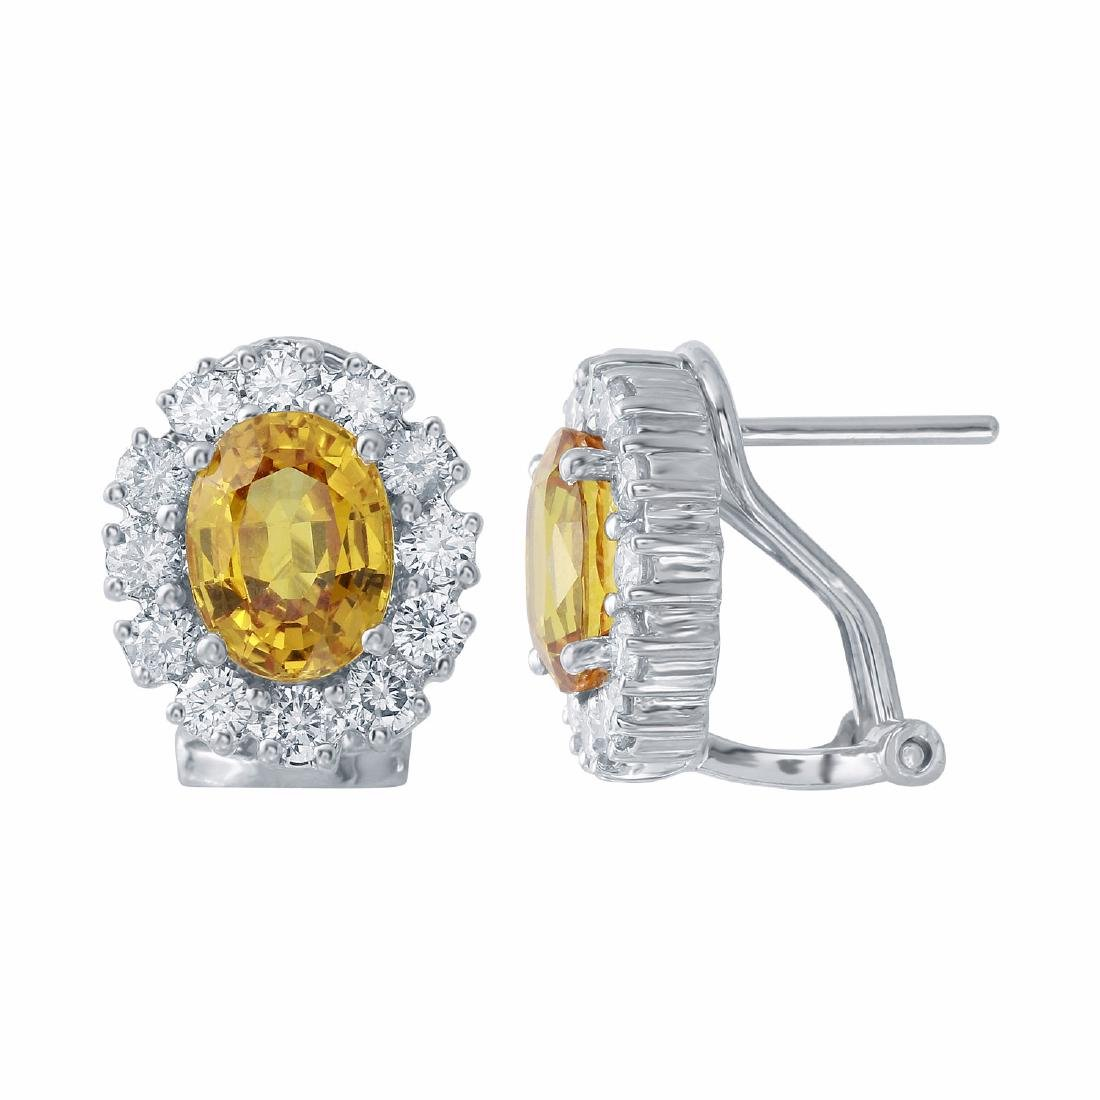 14KT White Gold 3.26ctw Yellow Sapphire and Diamond